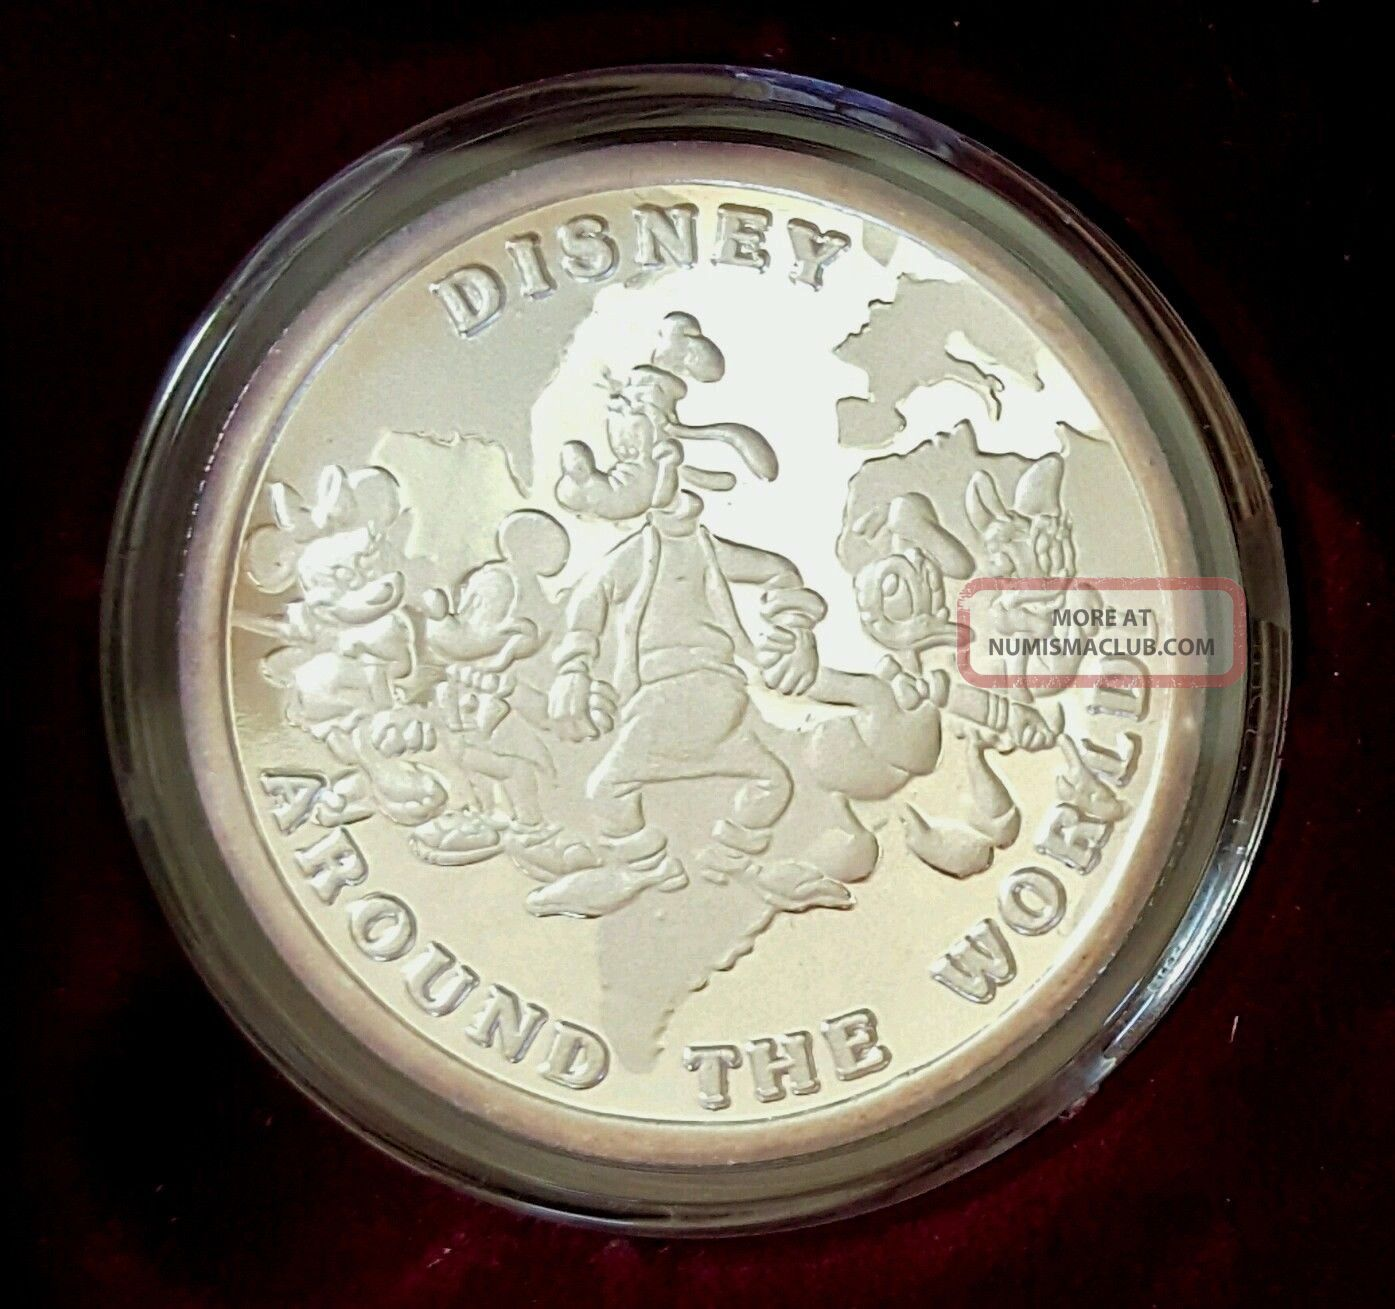 Disney Around The World 1 Oz Silver Coin 1988 Mickey